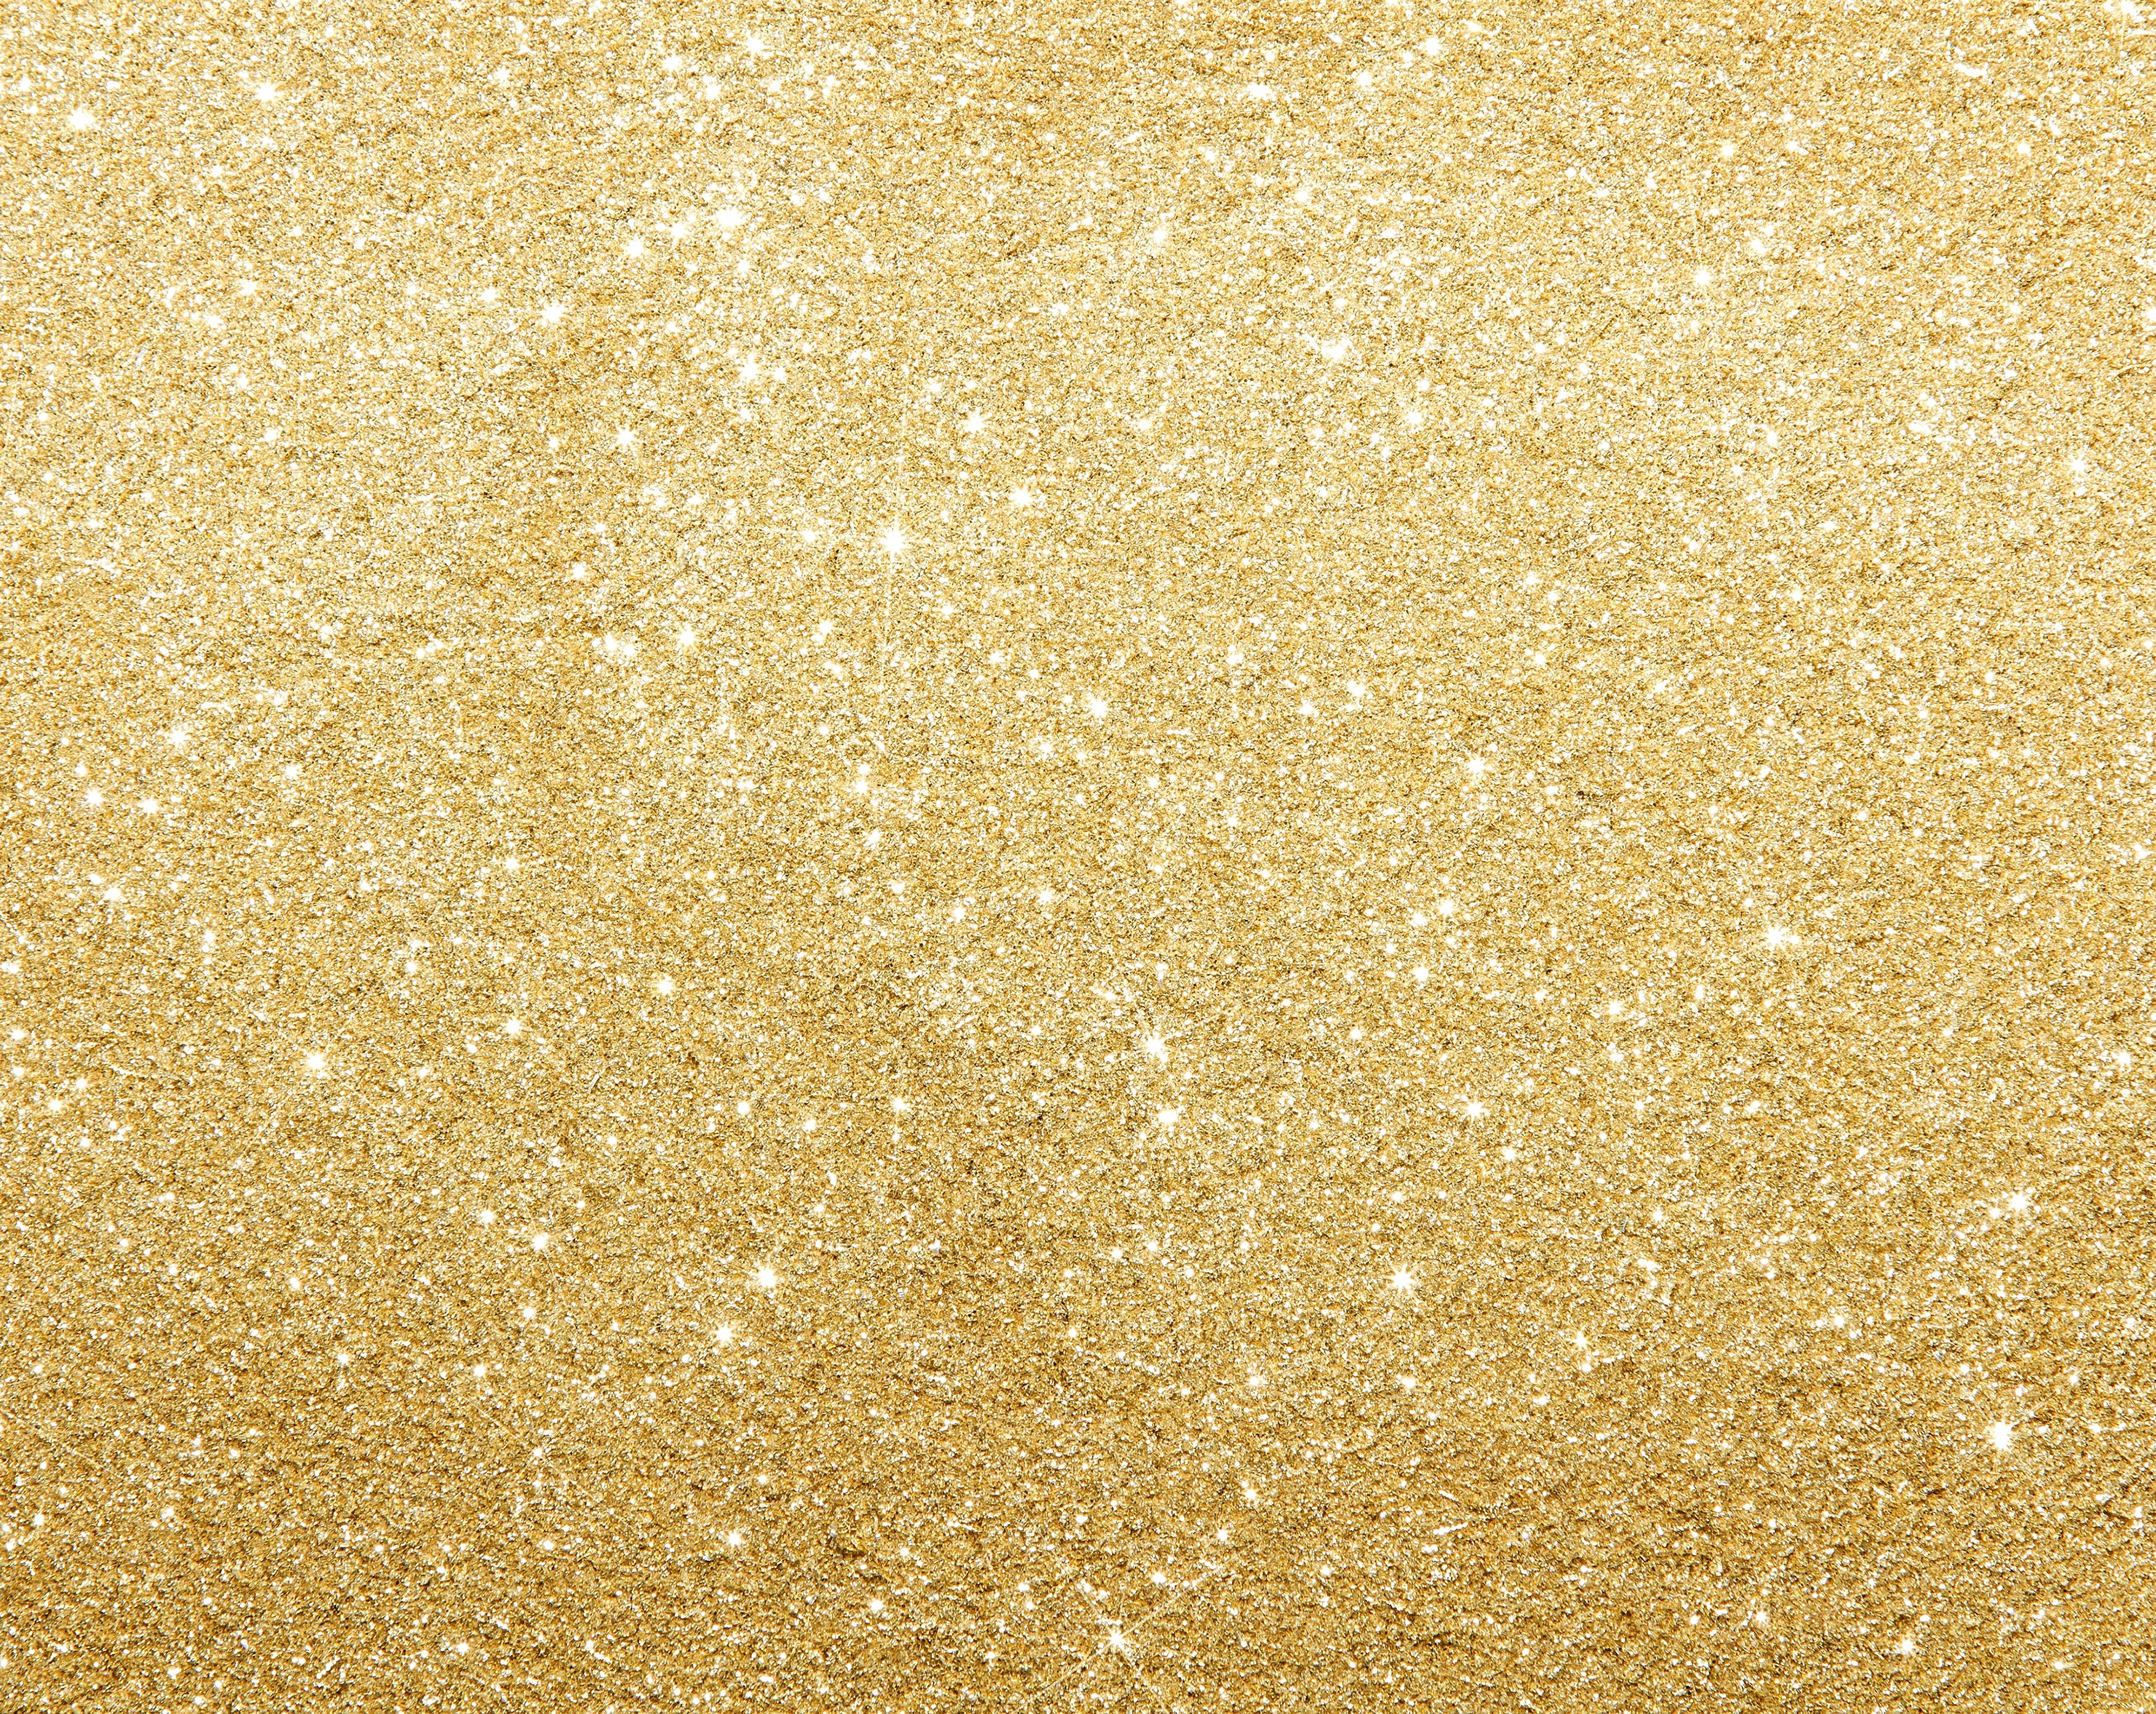 Gold Glitter Iphone Backgrounds Gold glitter t 3509x2789